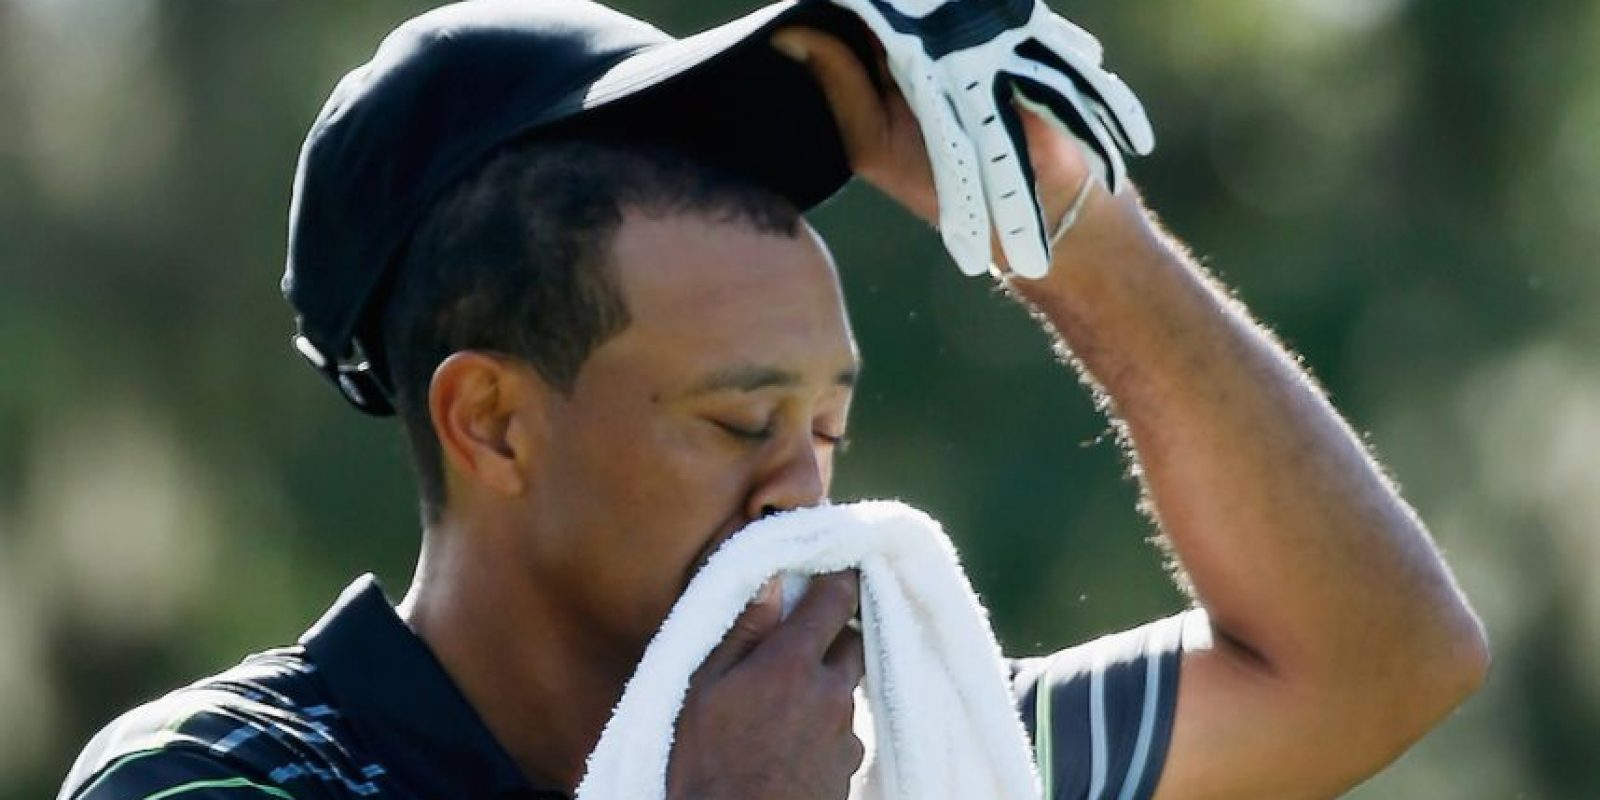 Tiger Woods, golfista estadounidense (2014). Foto: Getty Images